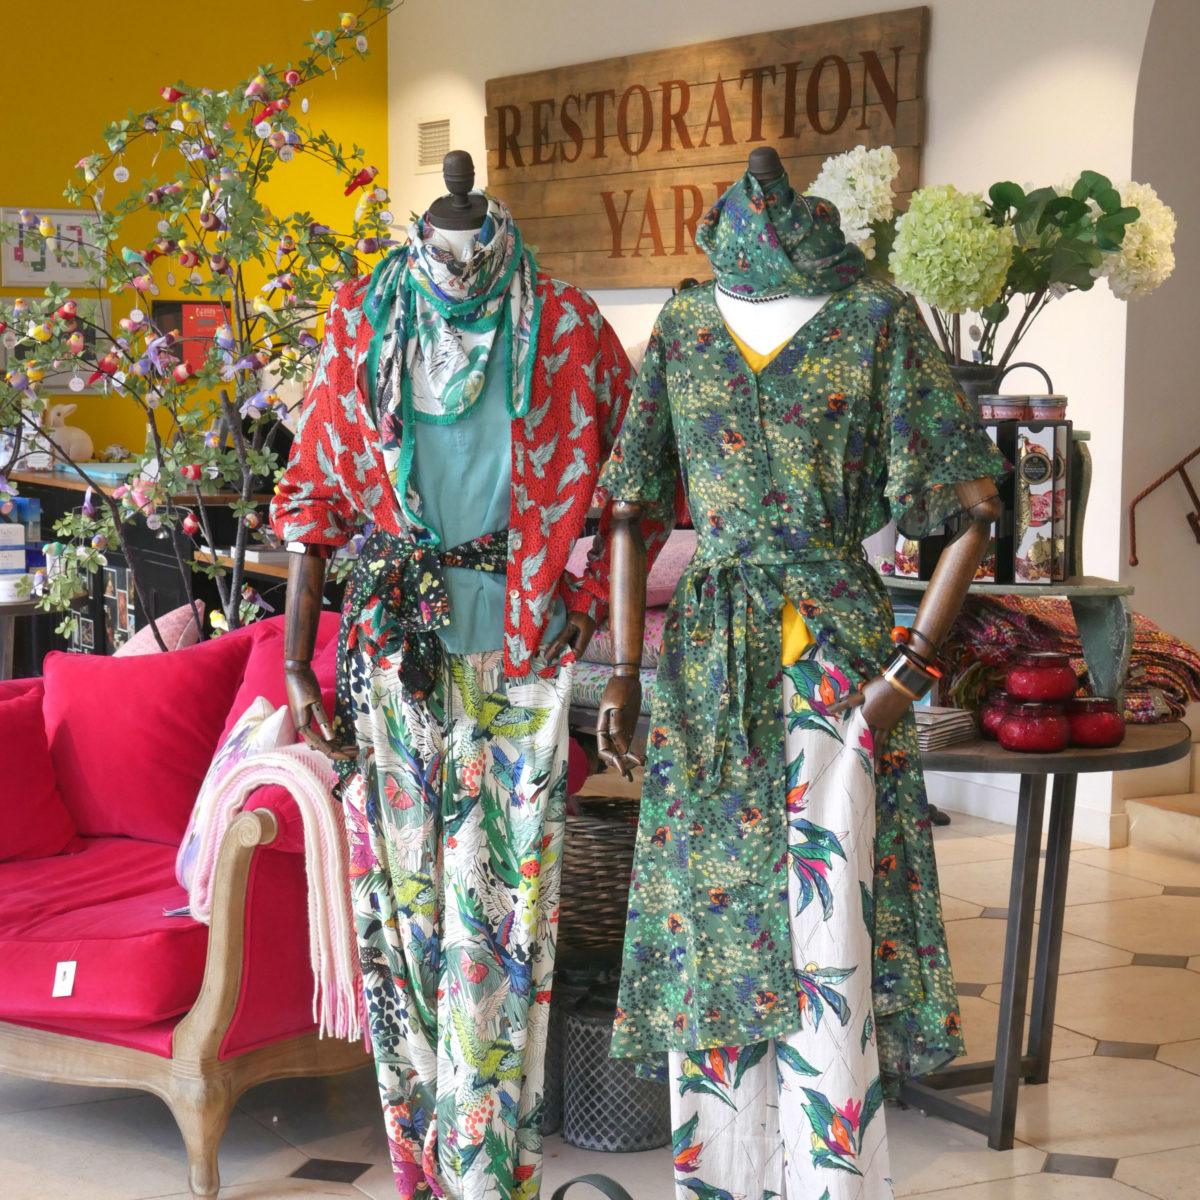 Womenswear in The Store at Restoration Yard